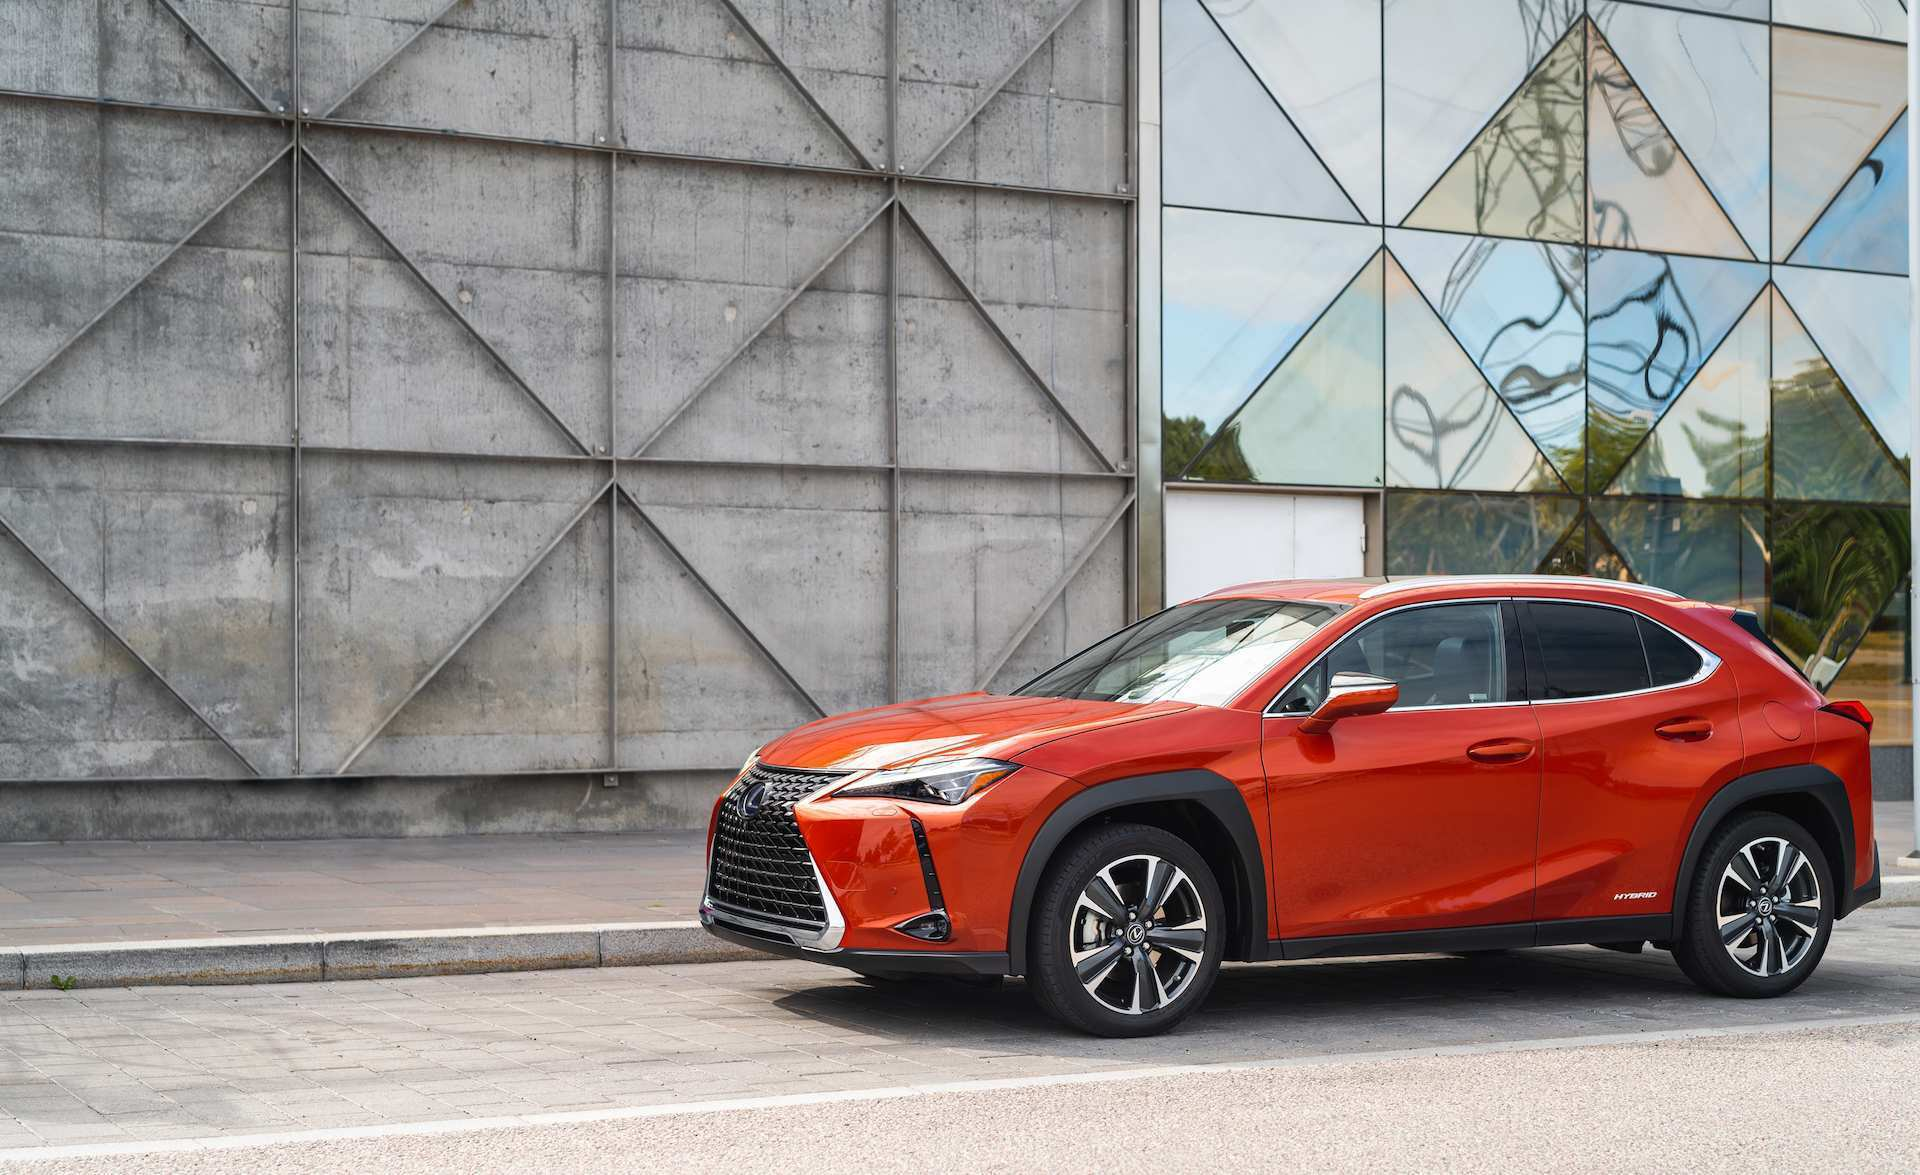 62 The Best Lexus Ux 2019 Price 2 Review And Release Date